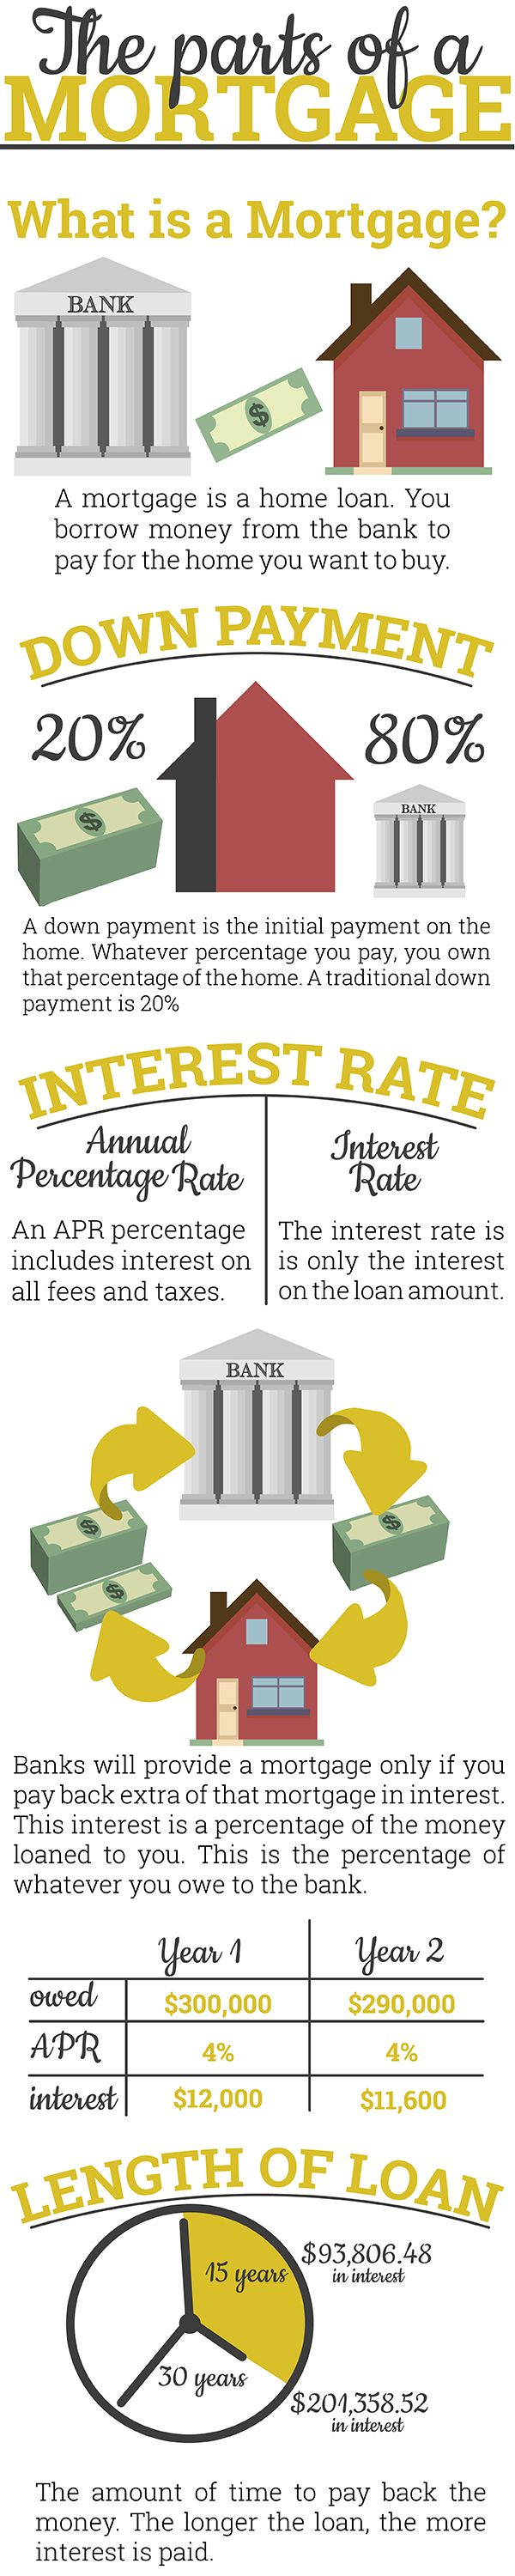 44 Best Images About Mortgage On Pinterest Finance Home